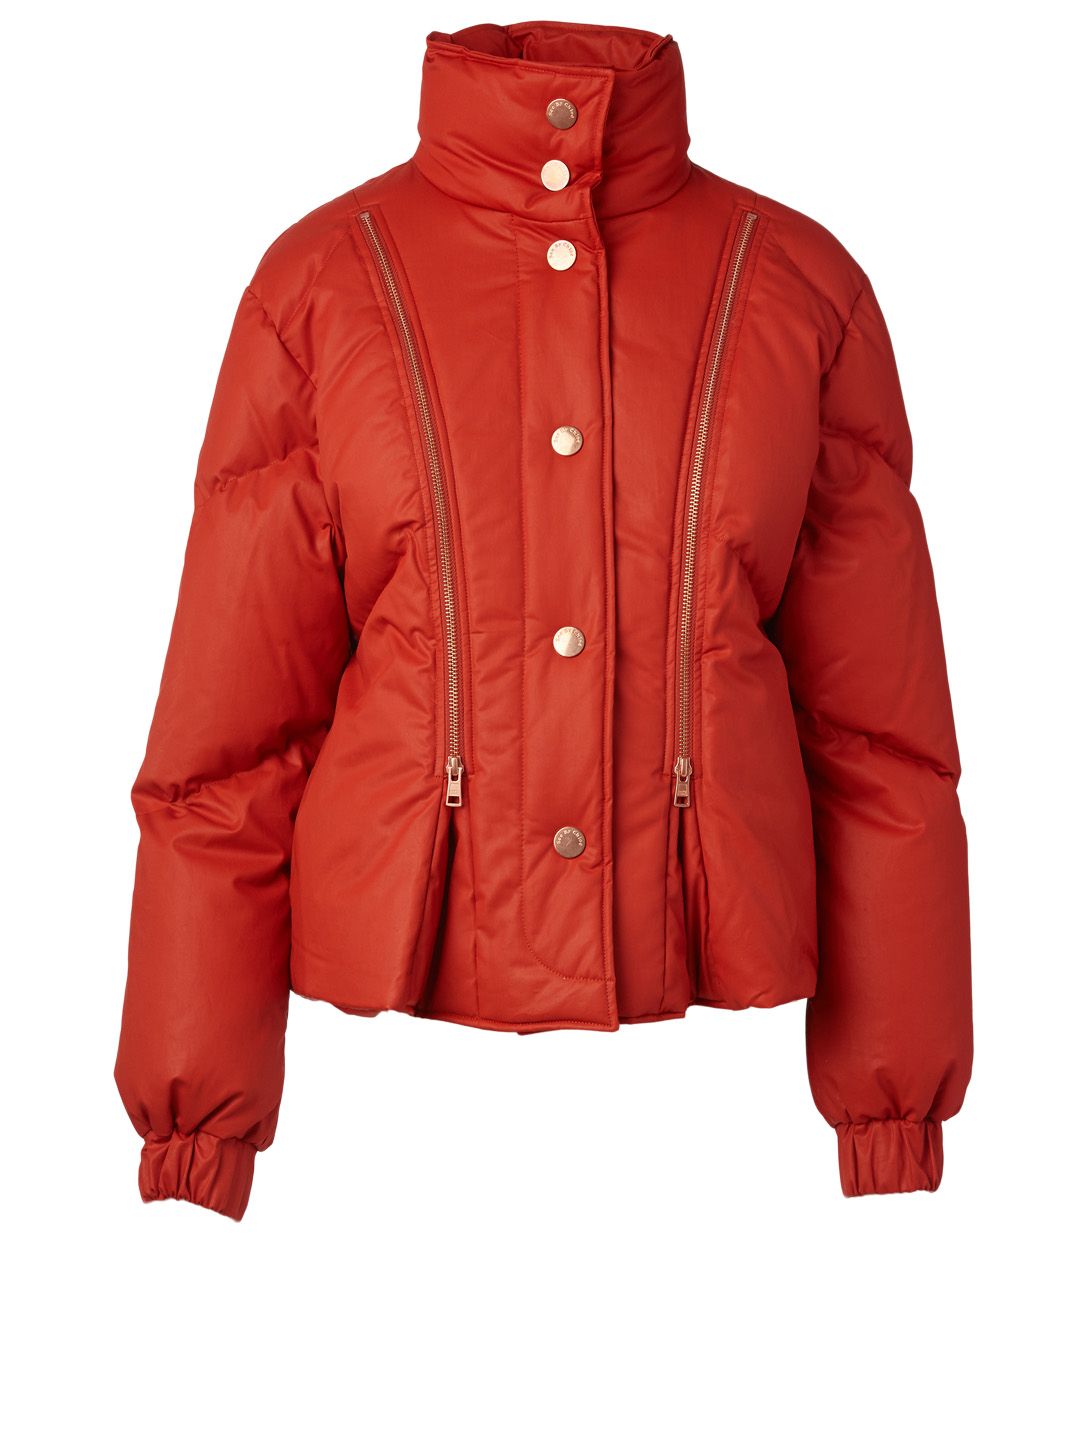 SEE BY CHLOÉ Quilted Puffer Jacket Women's Red